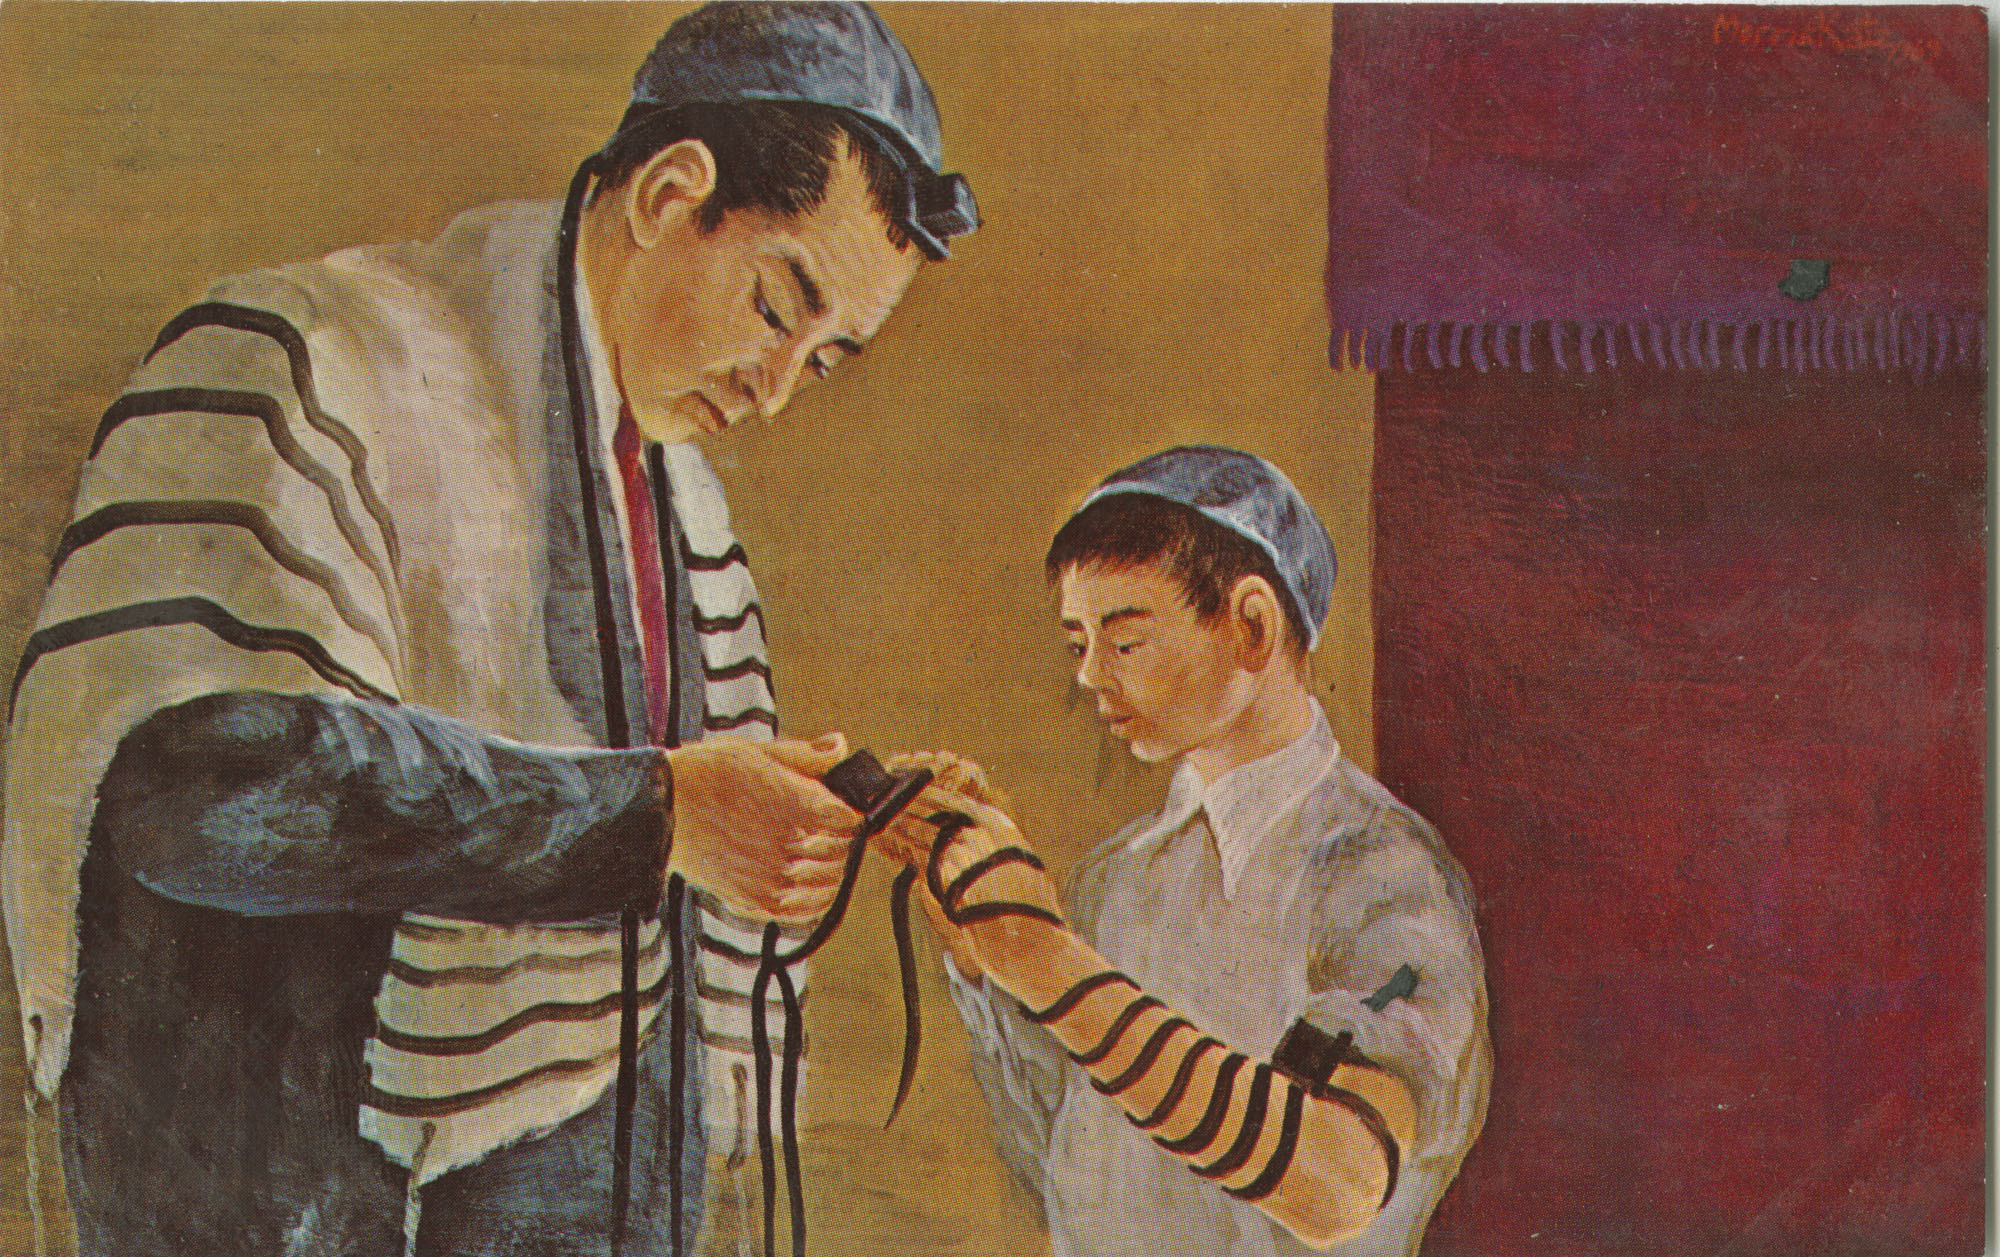 Preparing for Bar Mitzvah